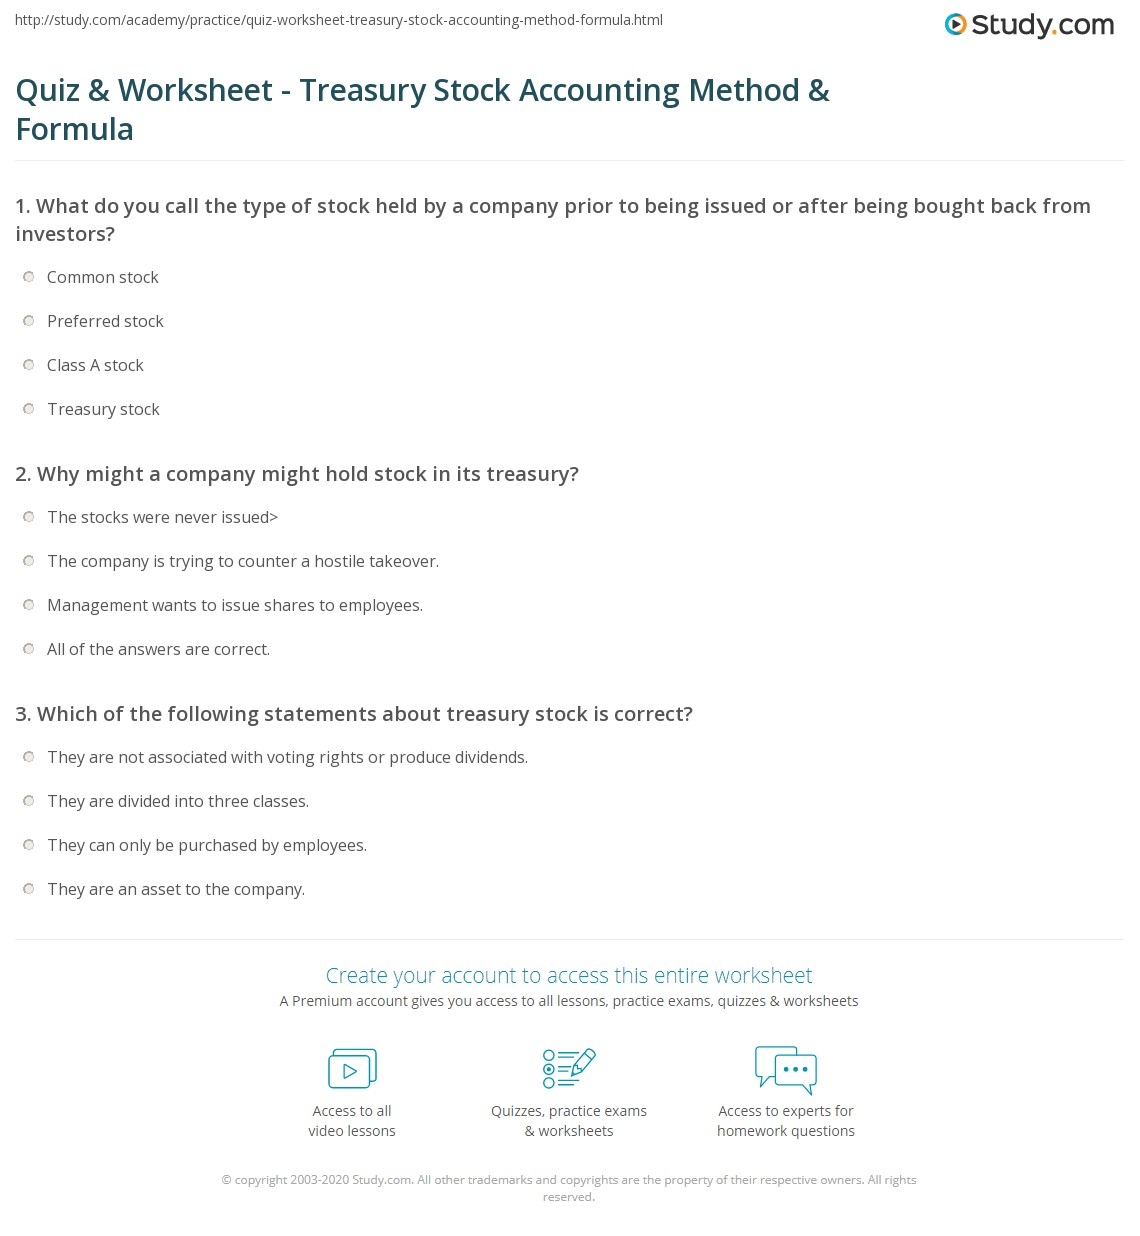 Quiz & Worksheet - Treasury Stock Accounting Method